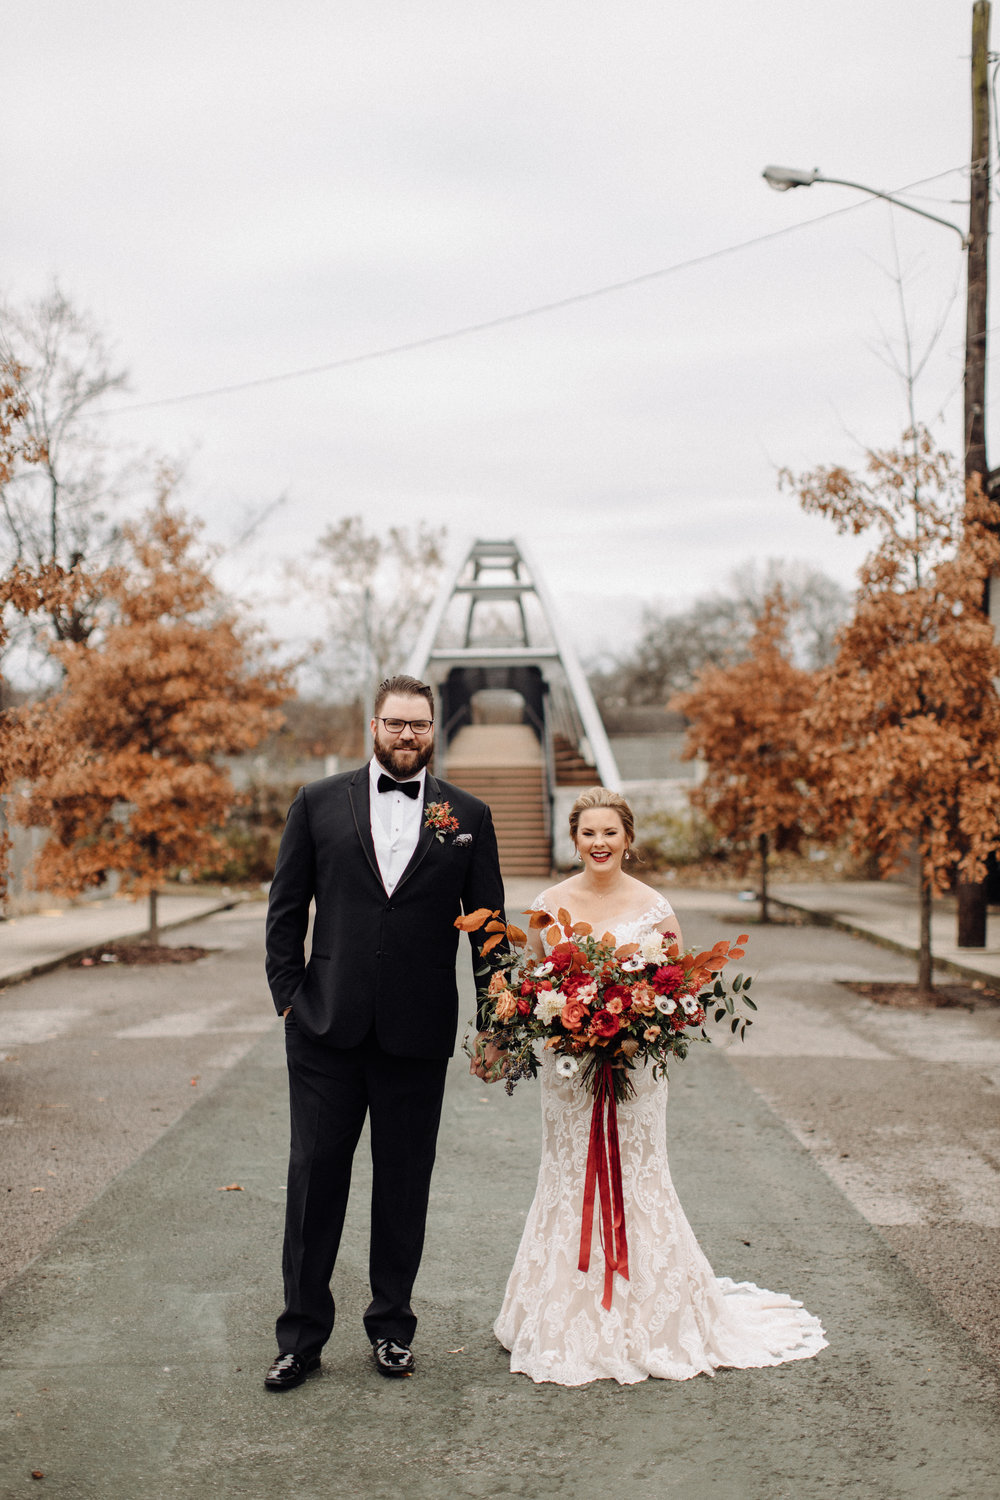 Asymmetrical, airy bridal bouquet with burgundy, burnt orange, and gold hues, using anemones, dahlias, and garden roses. Nashville, TN wedding florist.